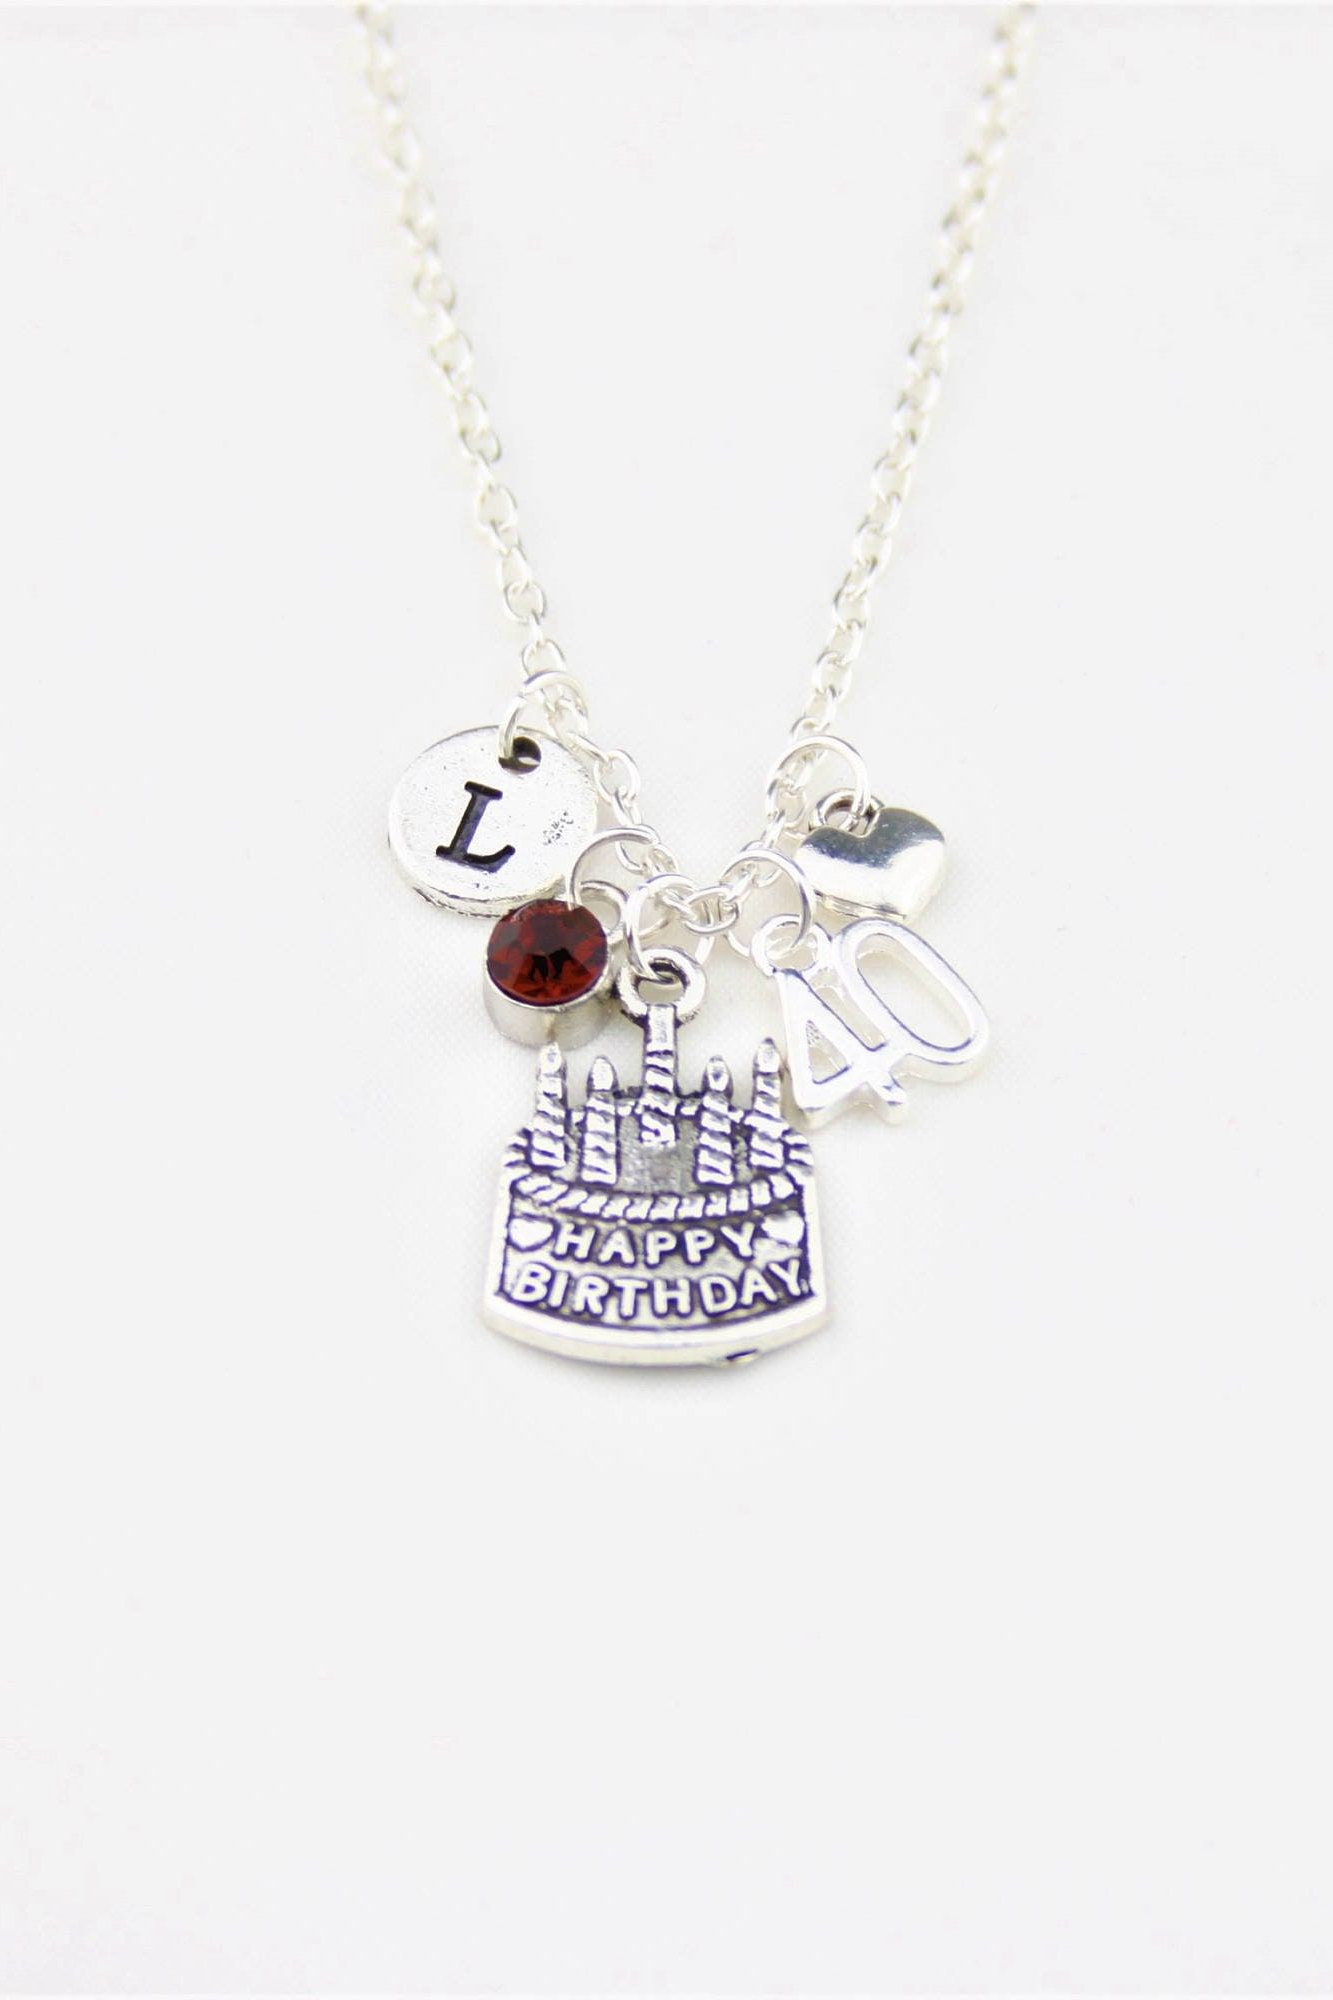 40th Birthday Gifts For Woman Gift Best Friend Her Jewelry 40 And Fabulous